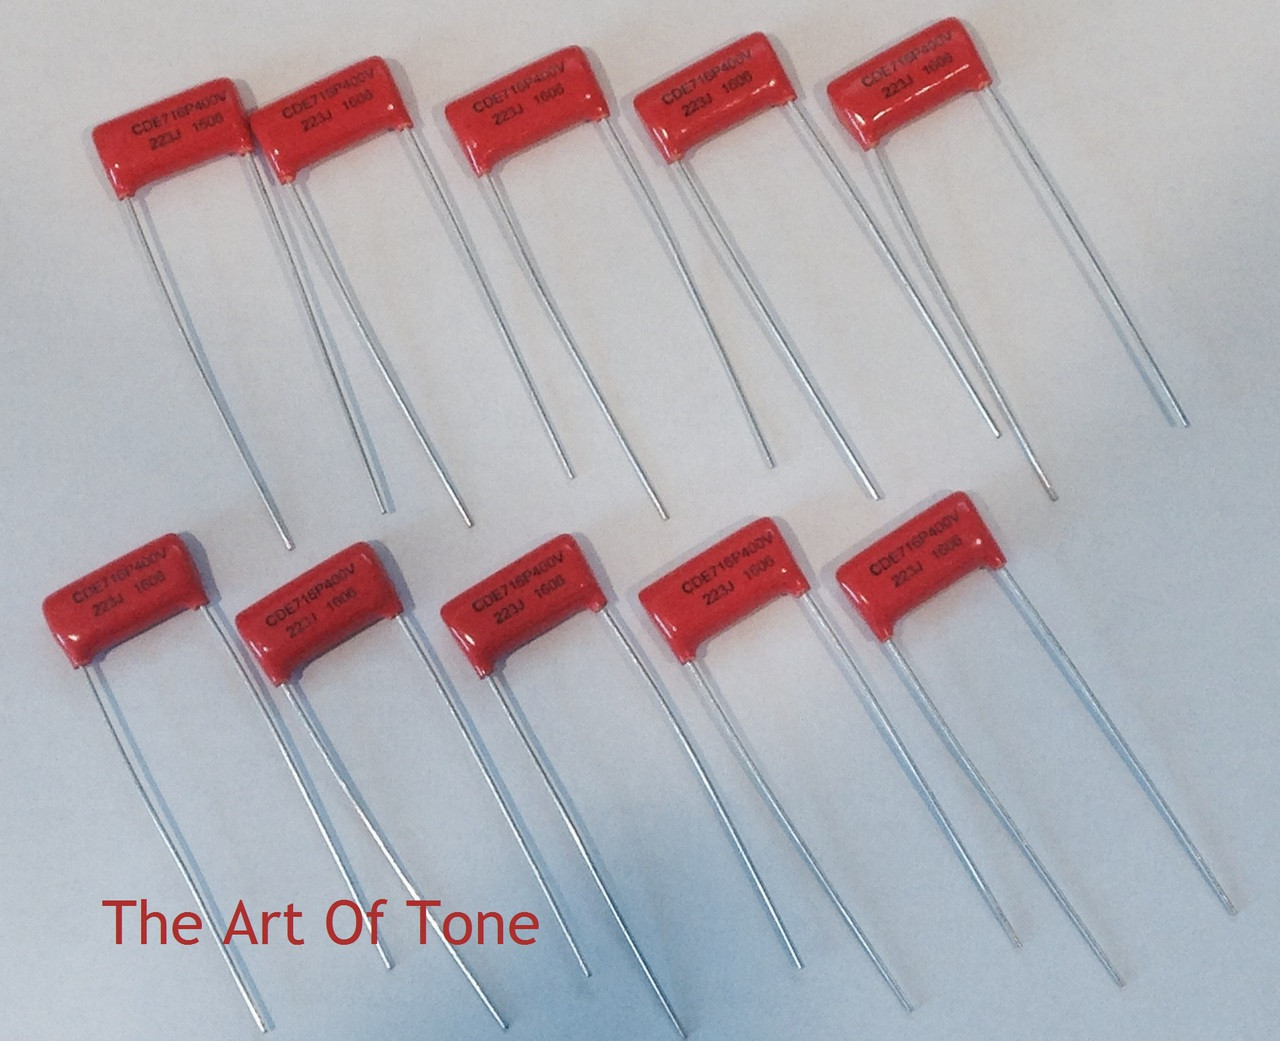 Bulk Lot of 10 Orange Drop .022uf@400V Polypropylene Capacitors - Cornell Dubillier (CDE)